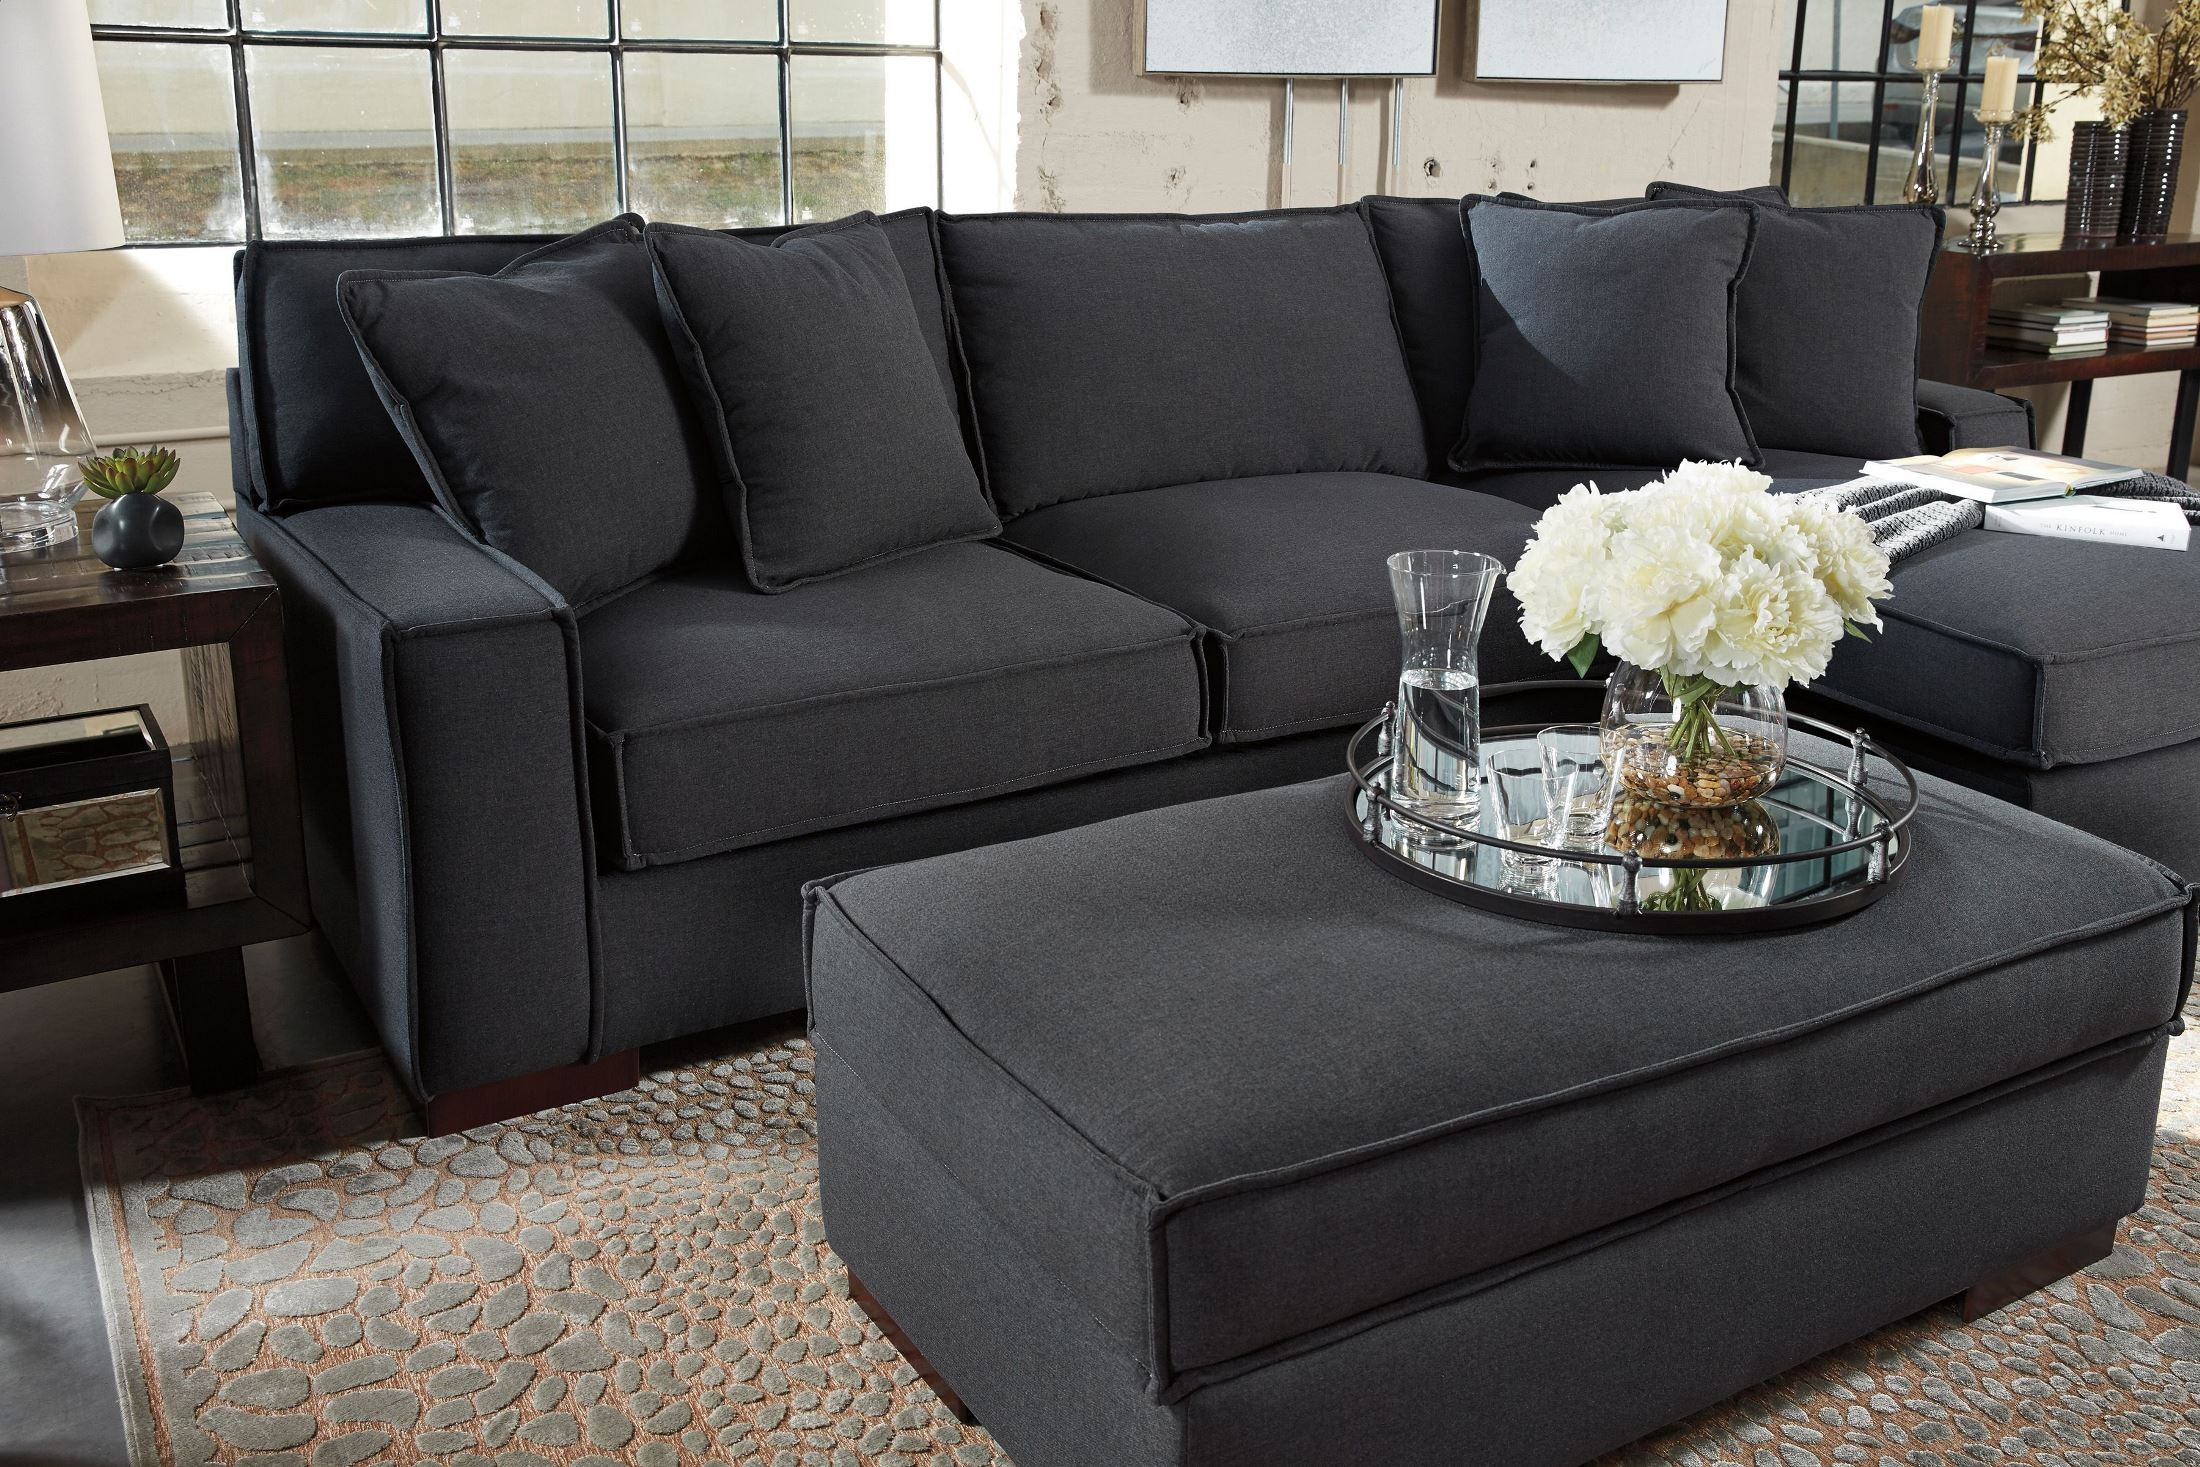 Gamaliel Charcoal Ottoman With Storage From Ashley